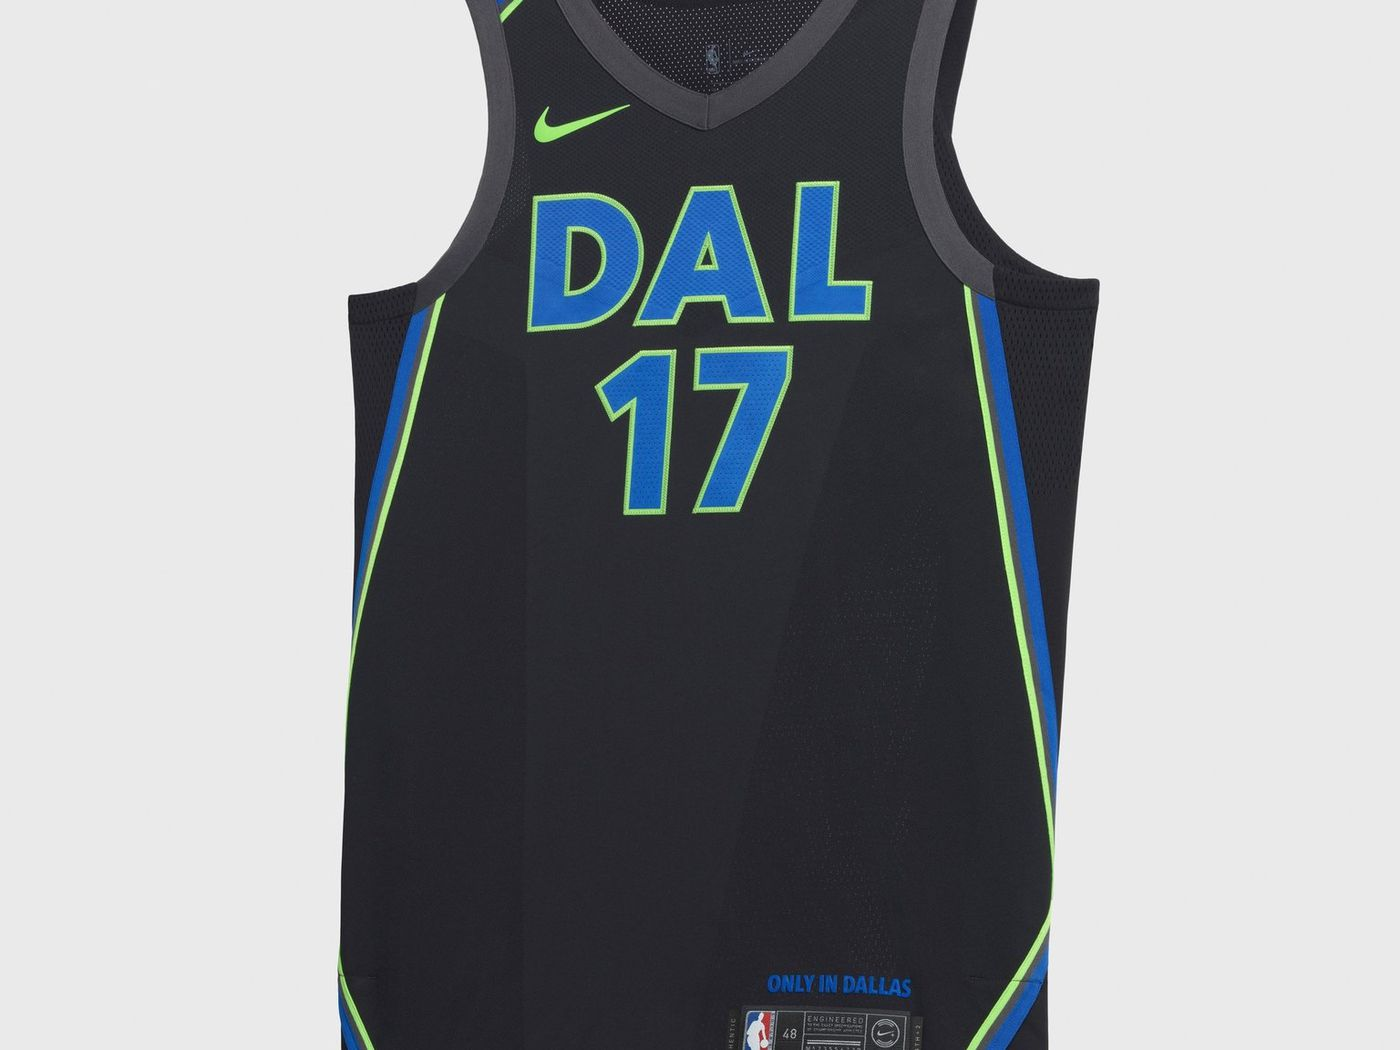 best website 0bc49 2a120 The Mavs' new uniforms are boring and uninspired - Mavs ...